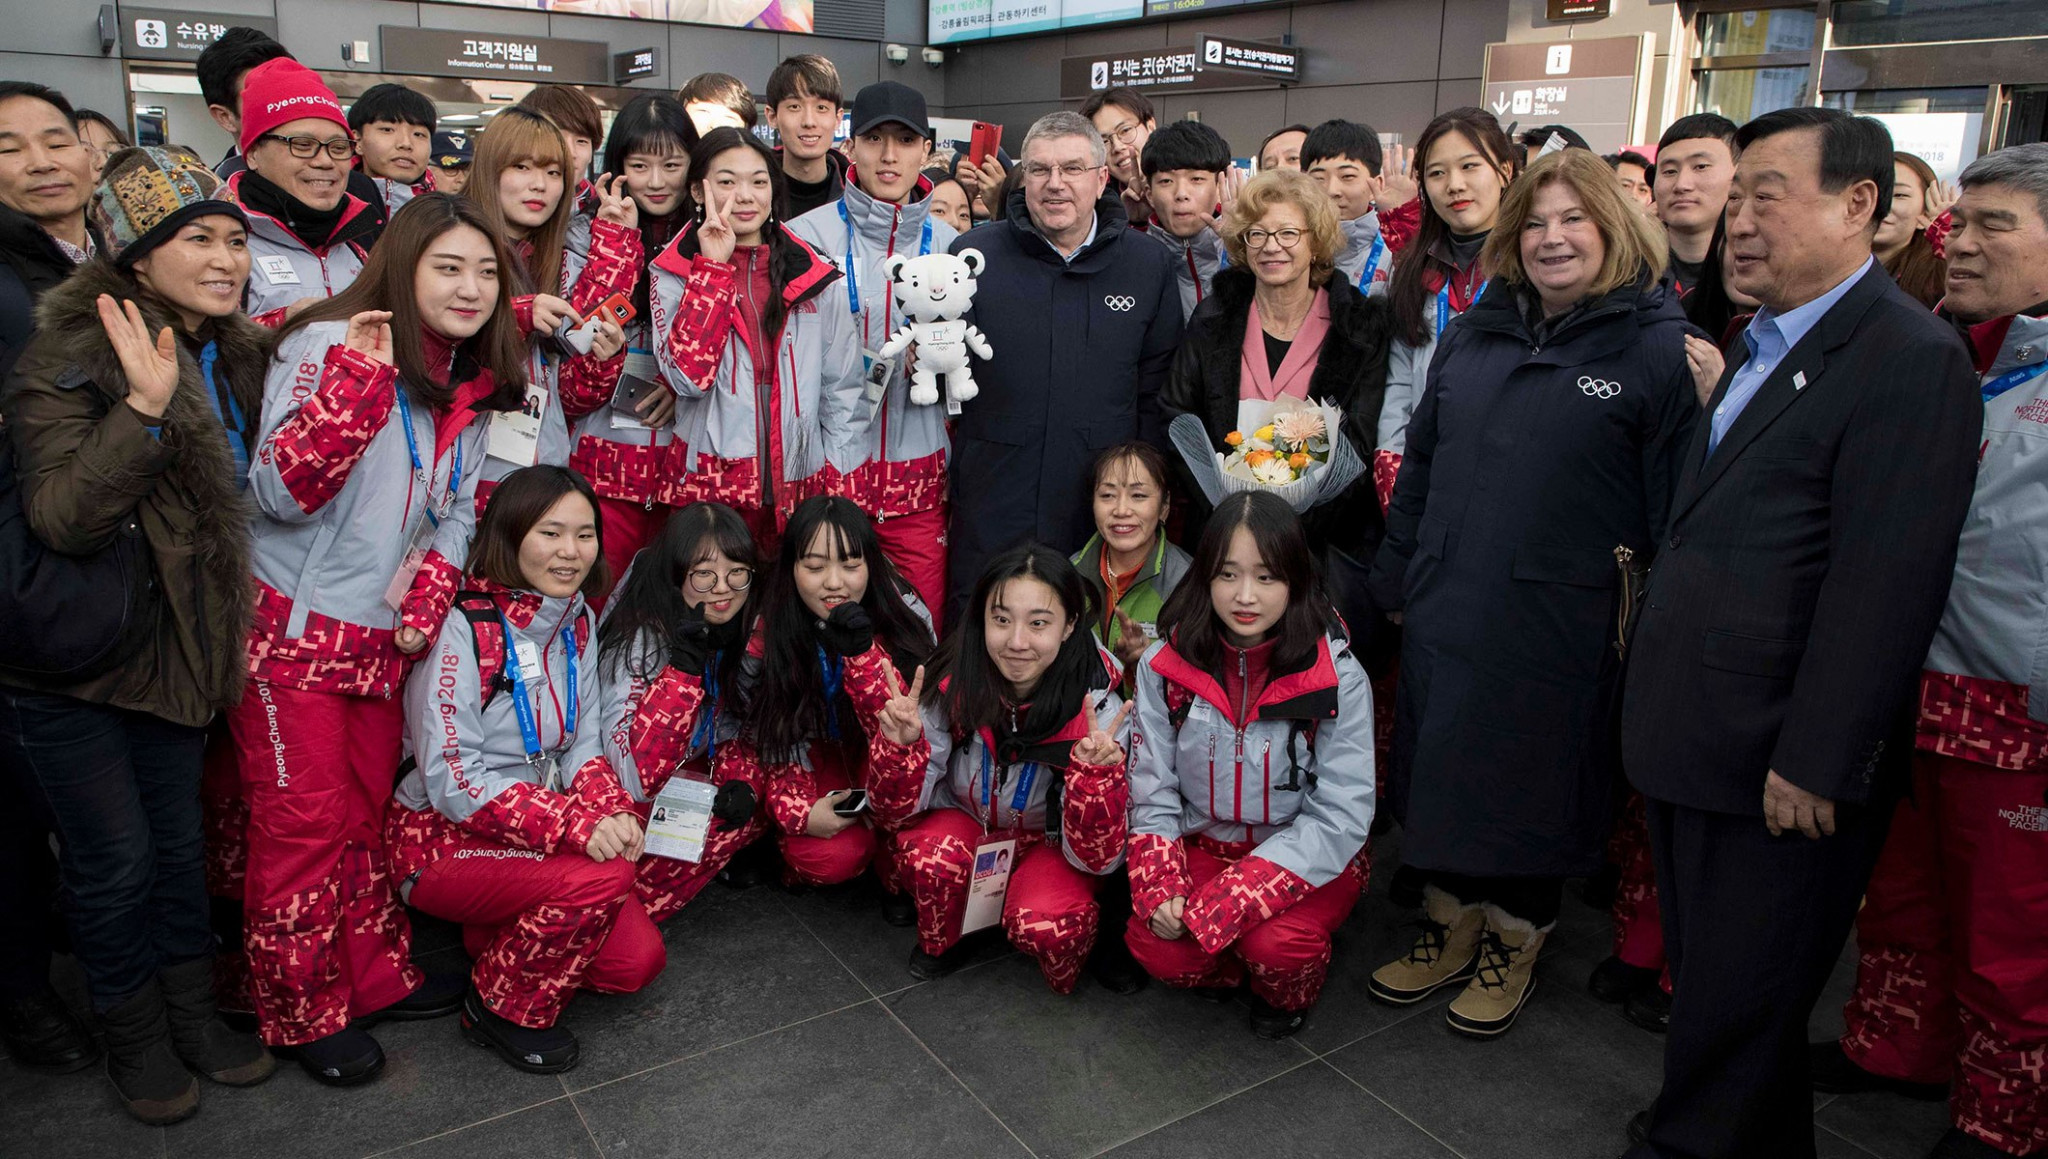 Bach discusses joint Korean ice hockey team after arriving in Pyeongchang